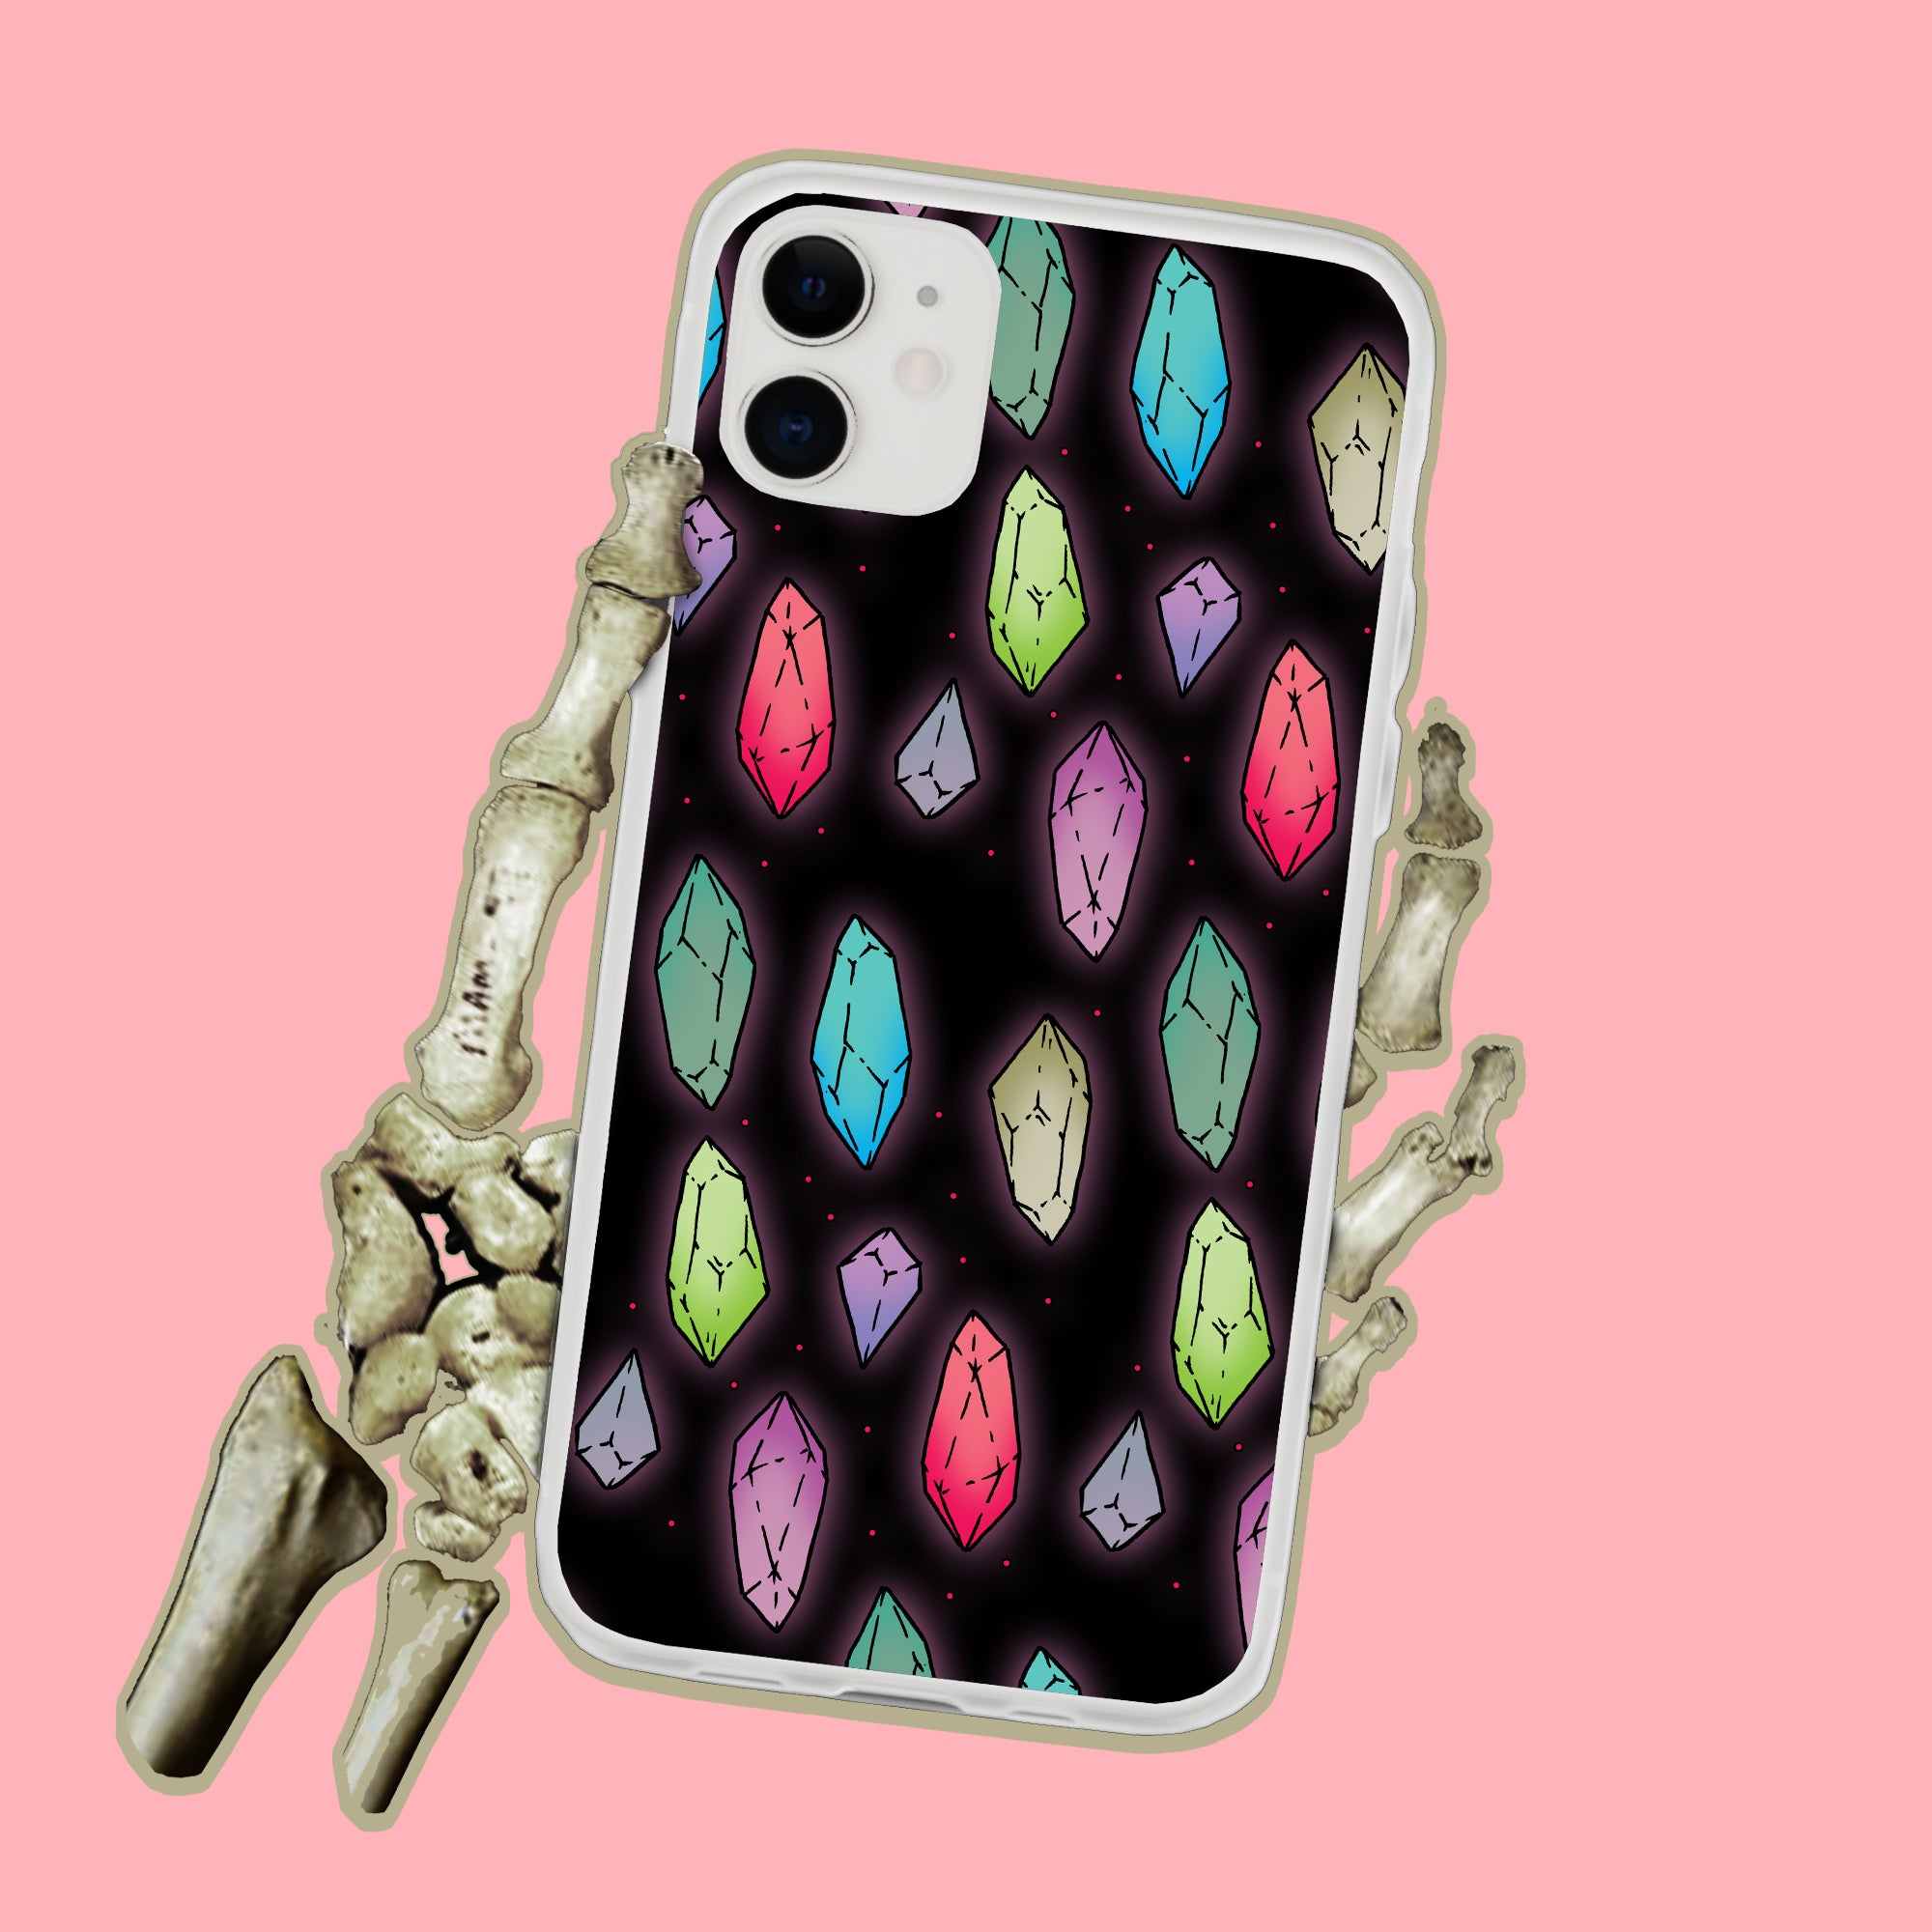 Crystals Magical Witchy iPhone Case